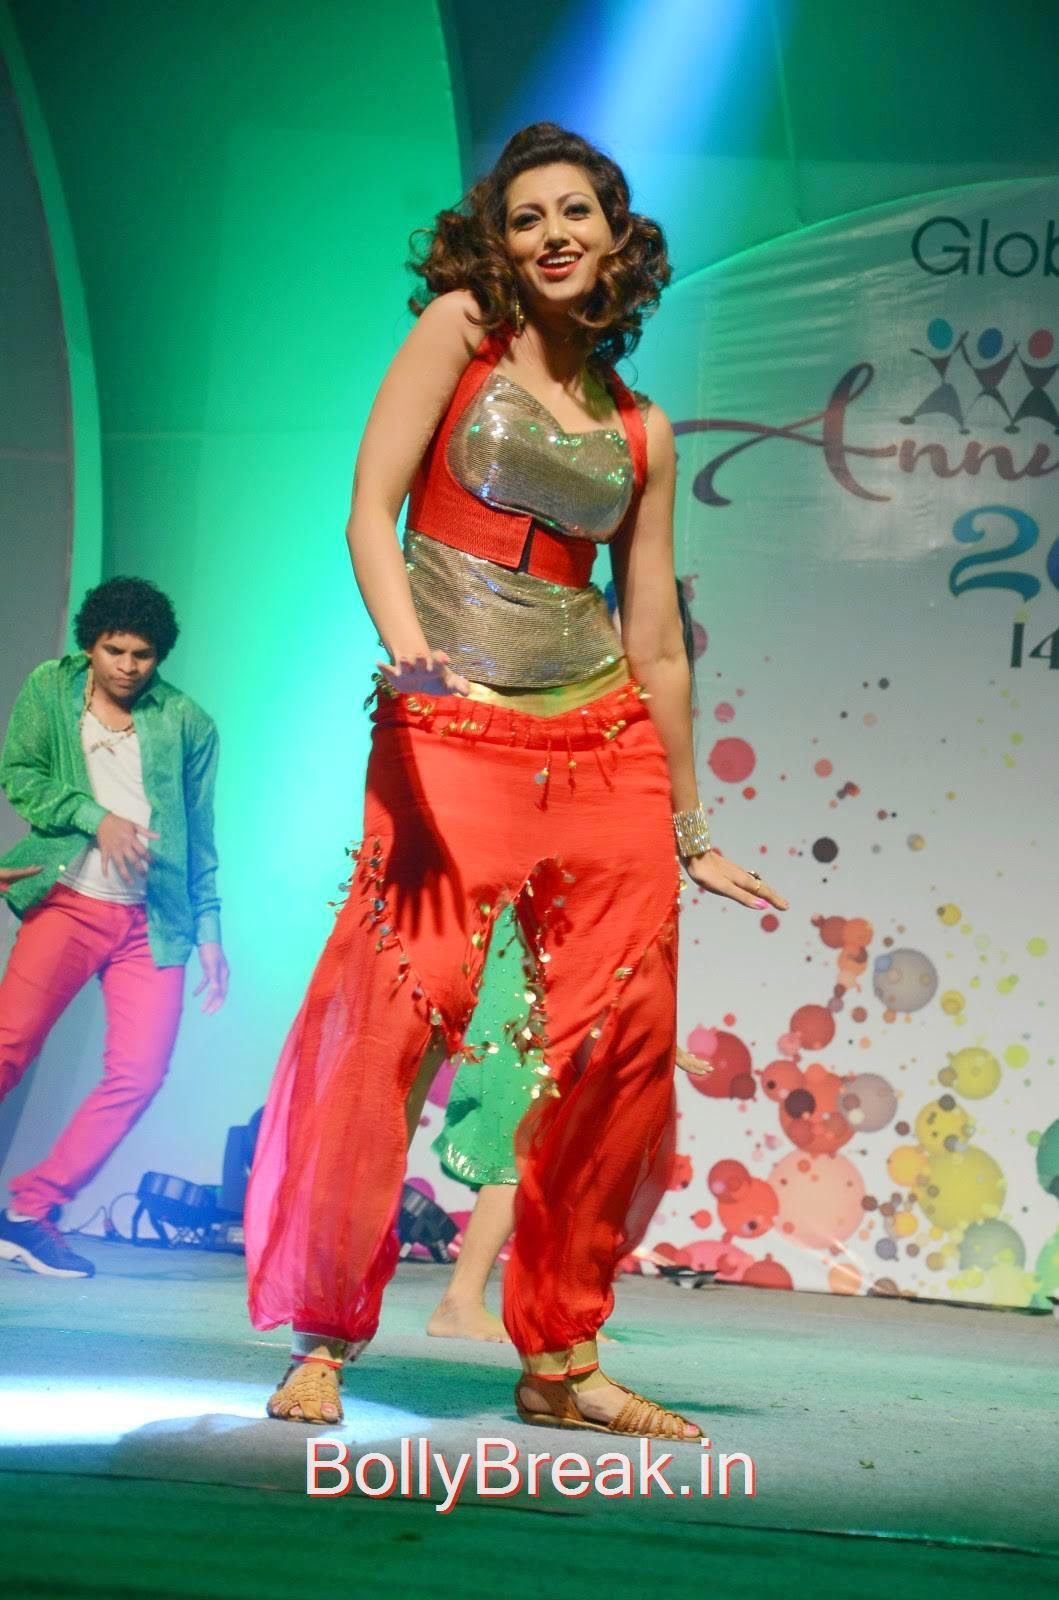 Hamsa Nandini Stills, Hamsa Nandini Hot Pics While Dancing in Red and Silver Dress